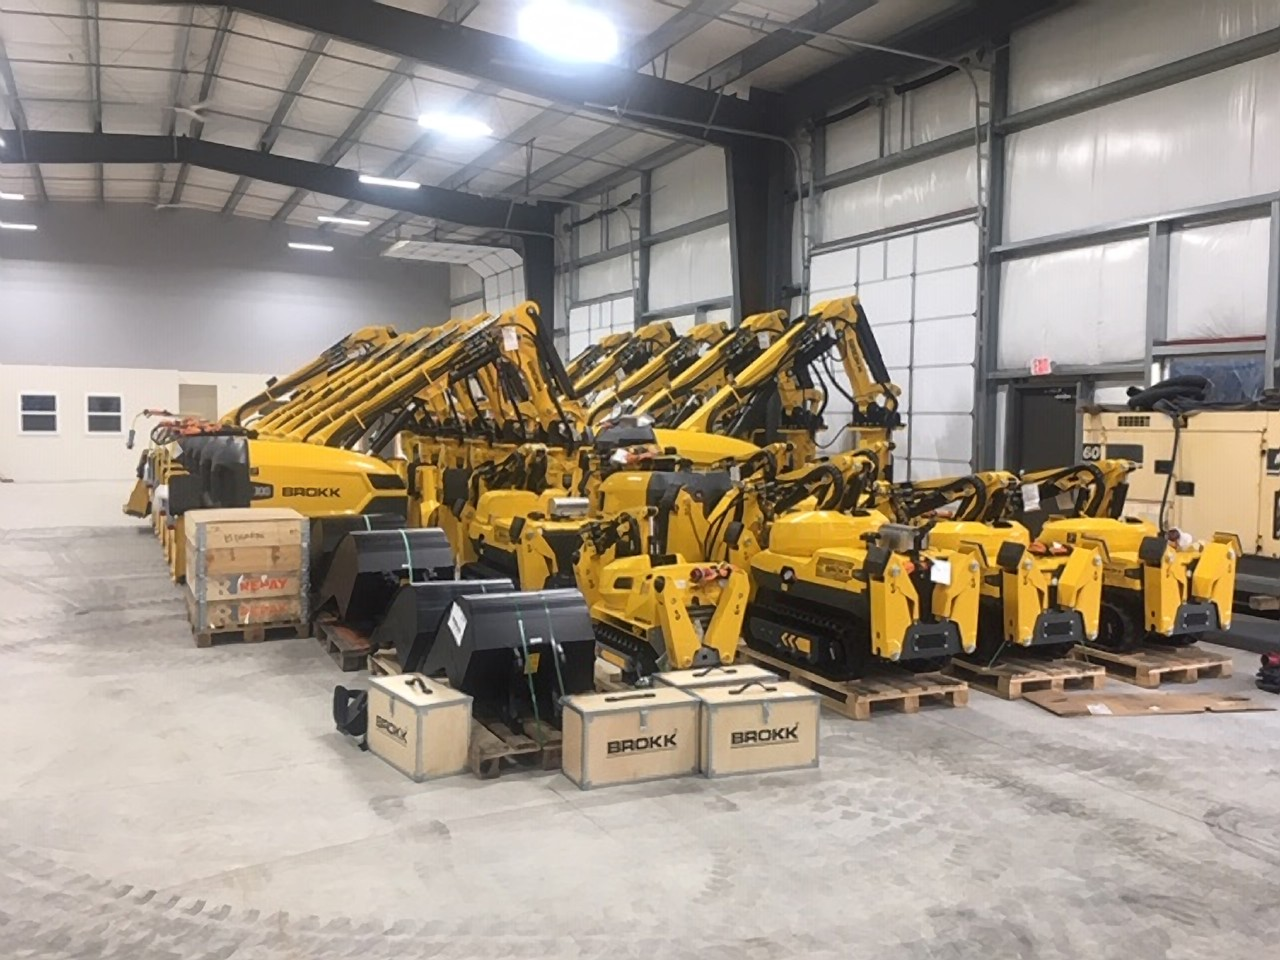 Brokk Inc. Relocates Stanhope Facility for Increased Inventory and Services